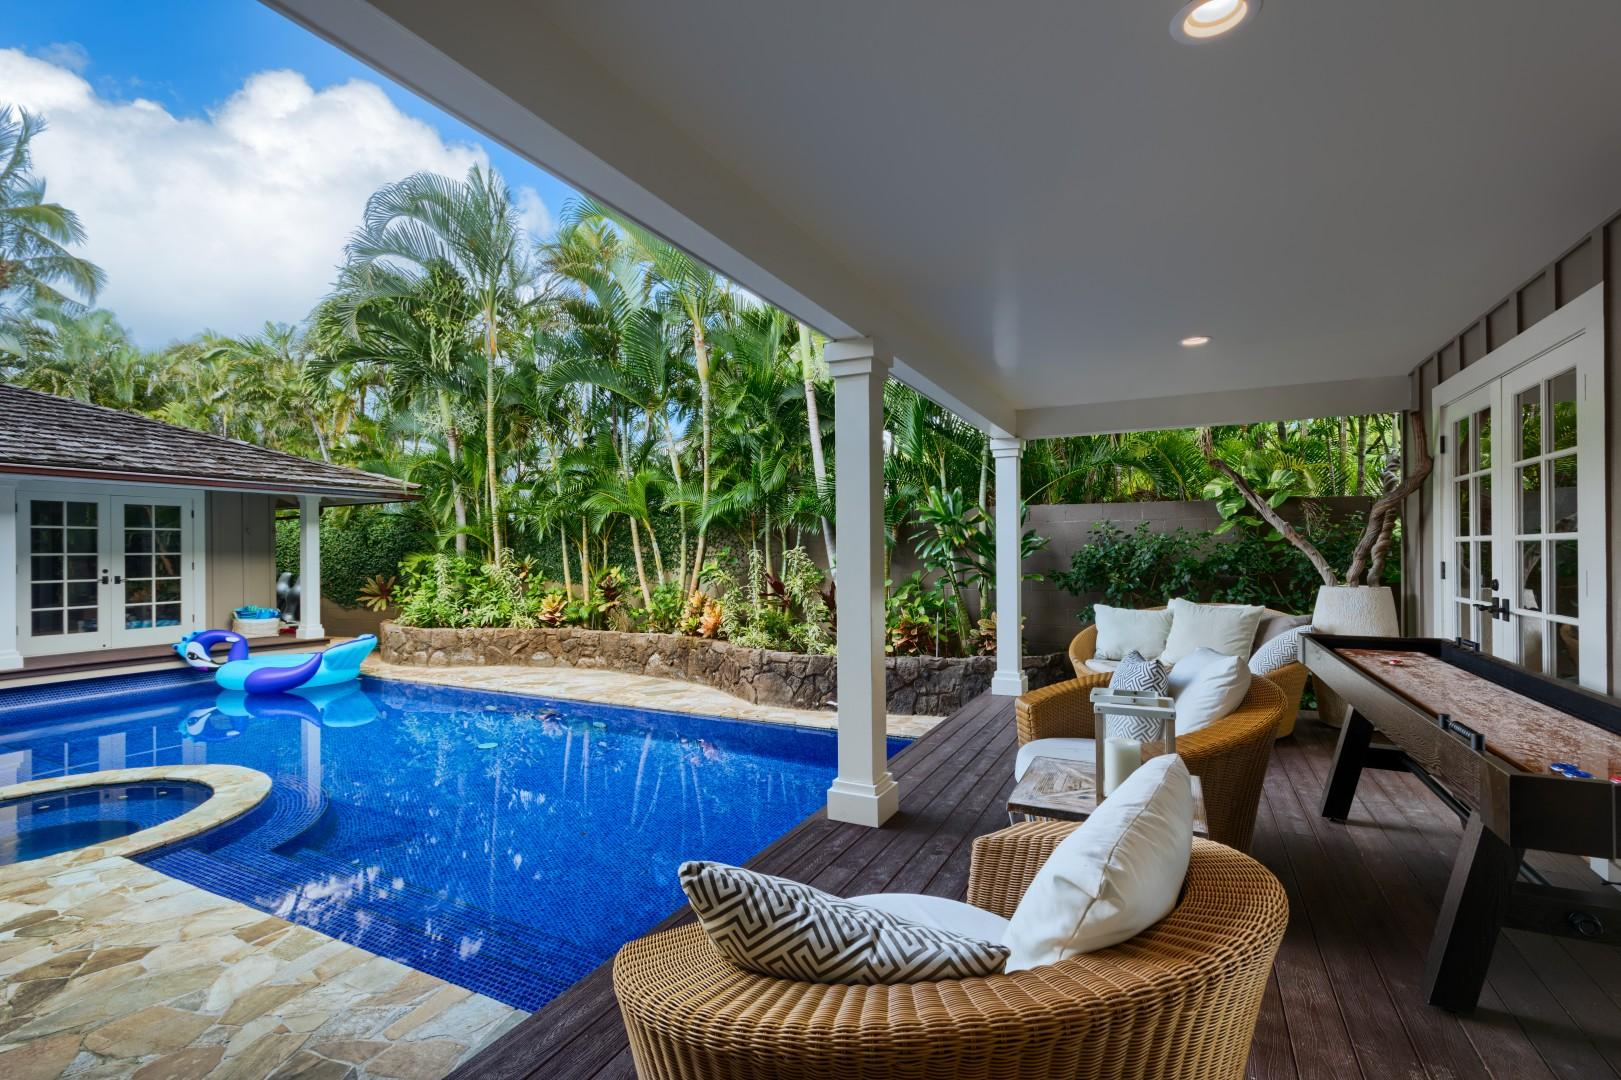 Your private pool, complete with a shuffle board for ultimate entertainment!